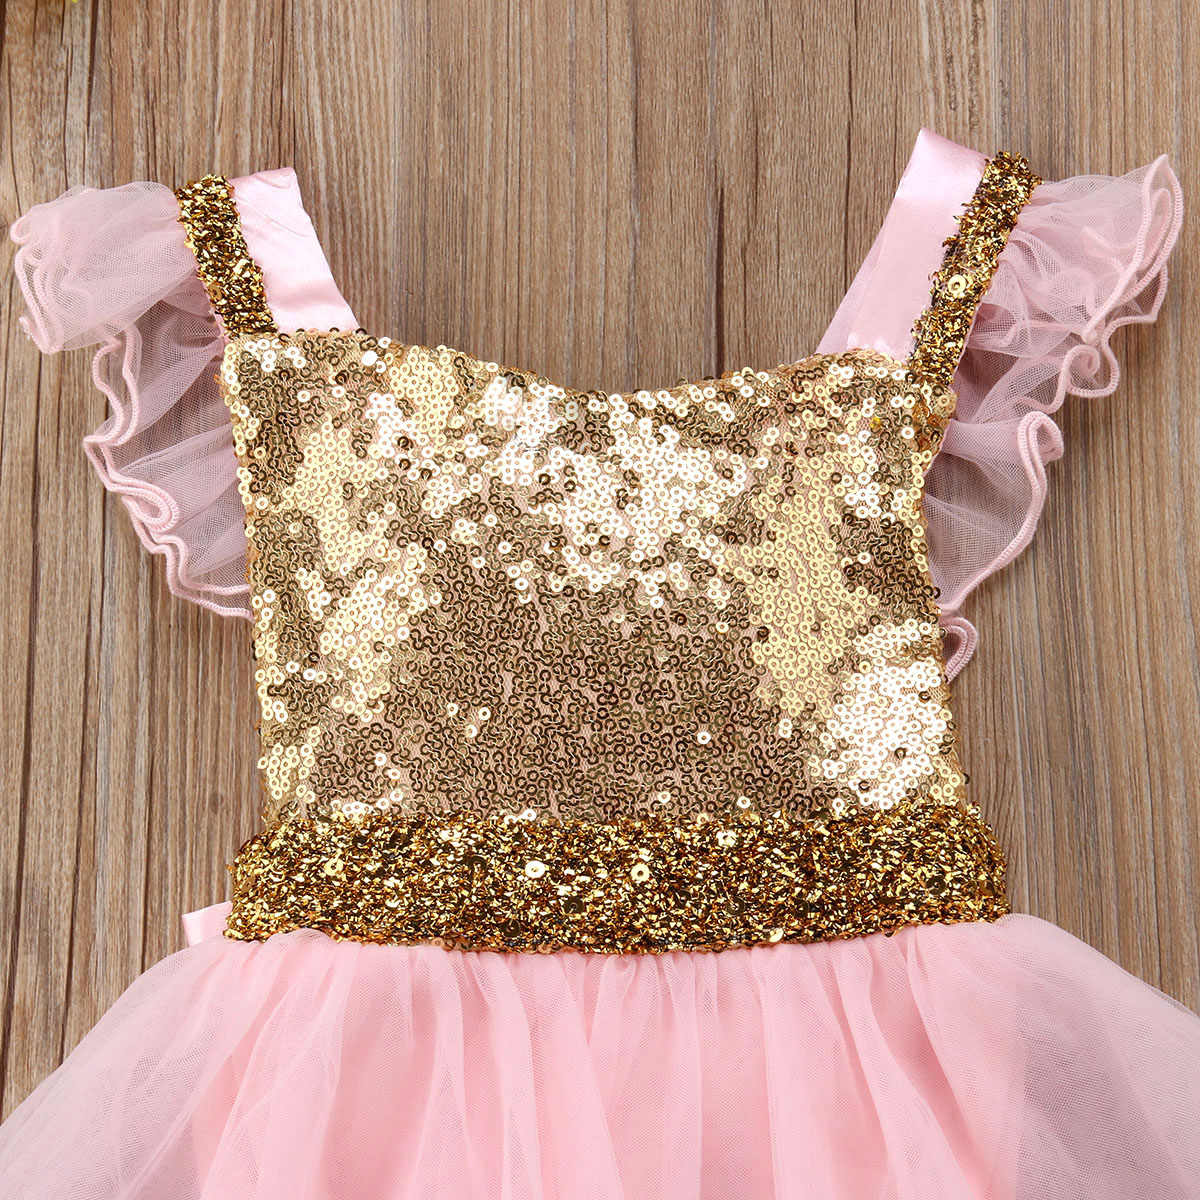 641bfe6003d ... Infant Girls Baby Sequin Bow Princess Dress Birthday Party Wedding  Romper Dress Summer Girl Party Vestidos ...